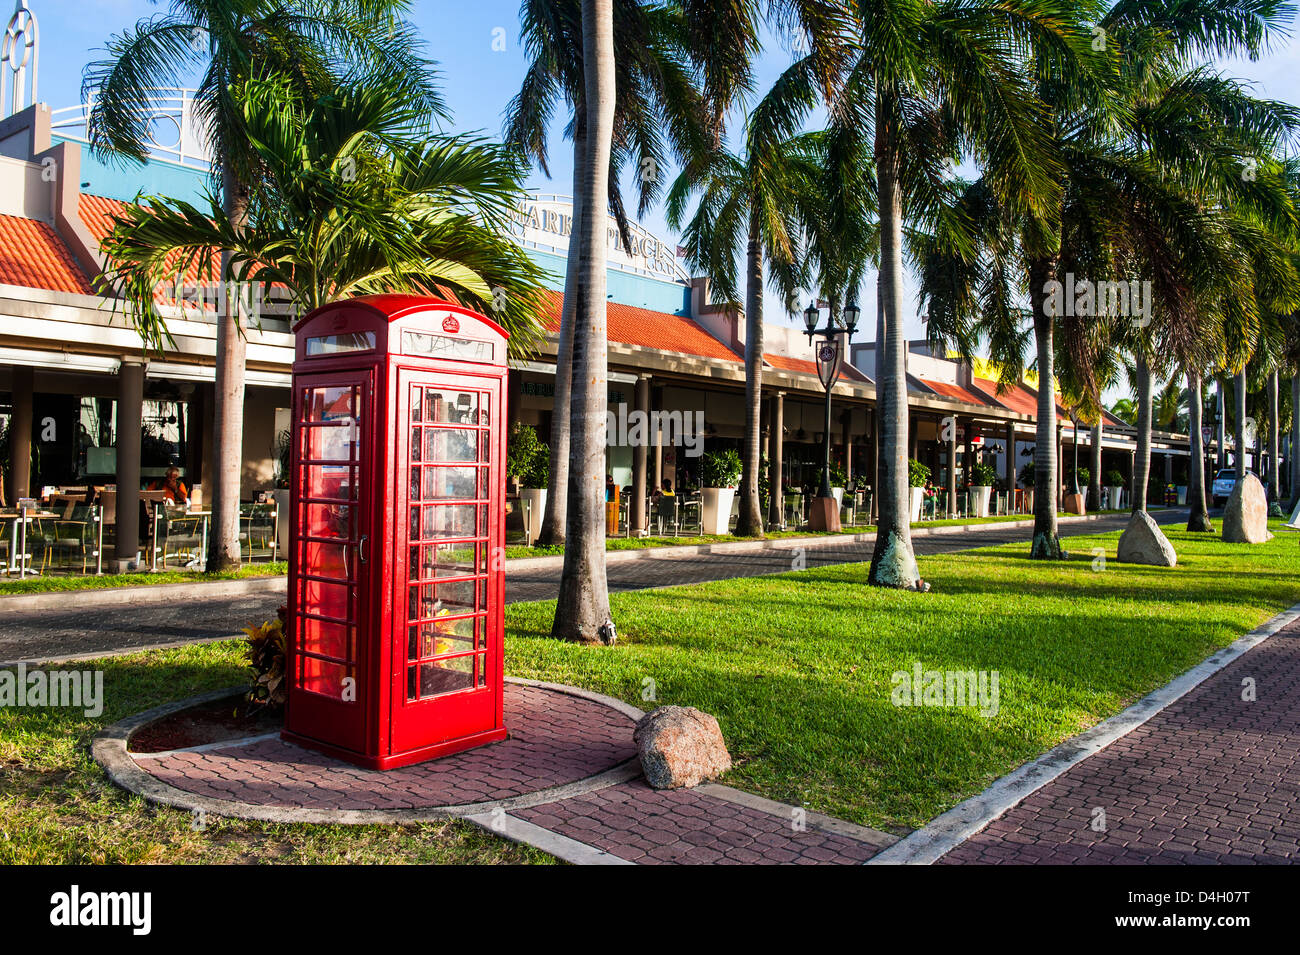 Red telephone box in downtown Oranjestad, capital of Aruba, ABC Islands, Netherlands Antilles, Caribbean - Stock Image